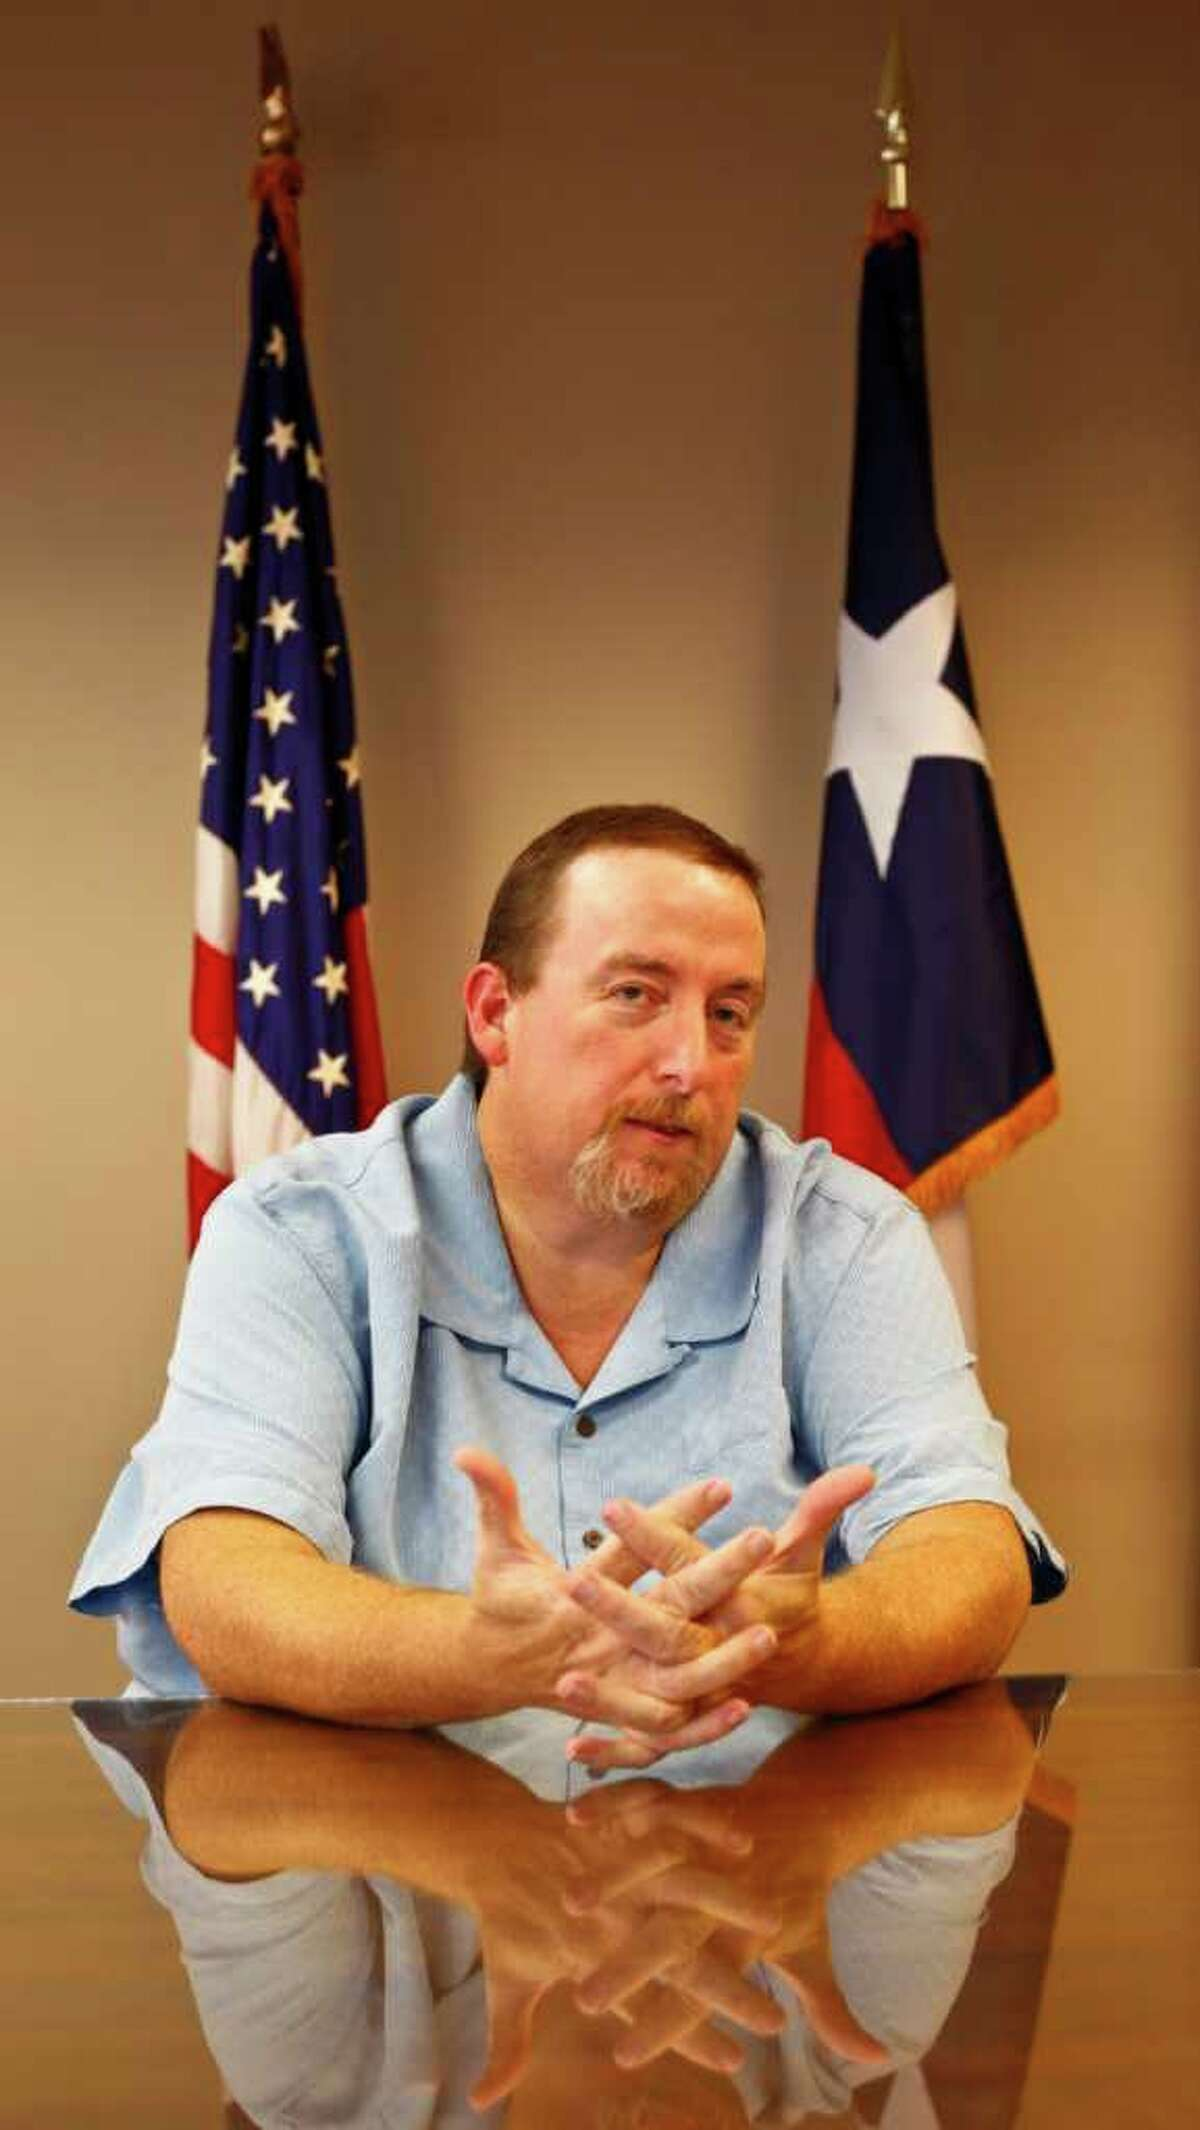 Ronald Kratz II was fired from his job because his employees said he was morbidly obese with a weight of 600 pounds. The EEOC has sued BAE Systems on his behalf under the Americans with Disabilities Act. Wednesday, Sept. 28, 2011, in Houston. ( Michael Paulsen / Houston Chronicle )